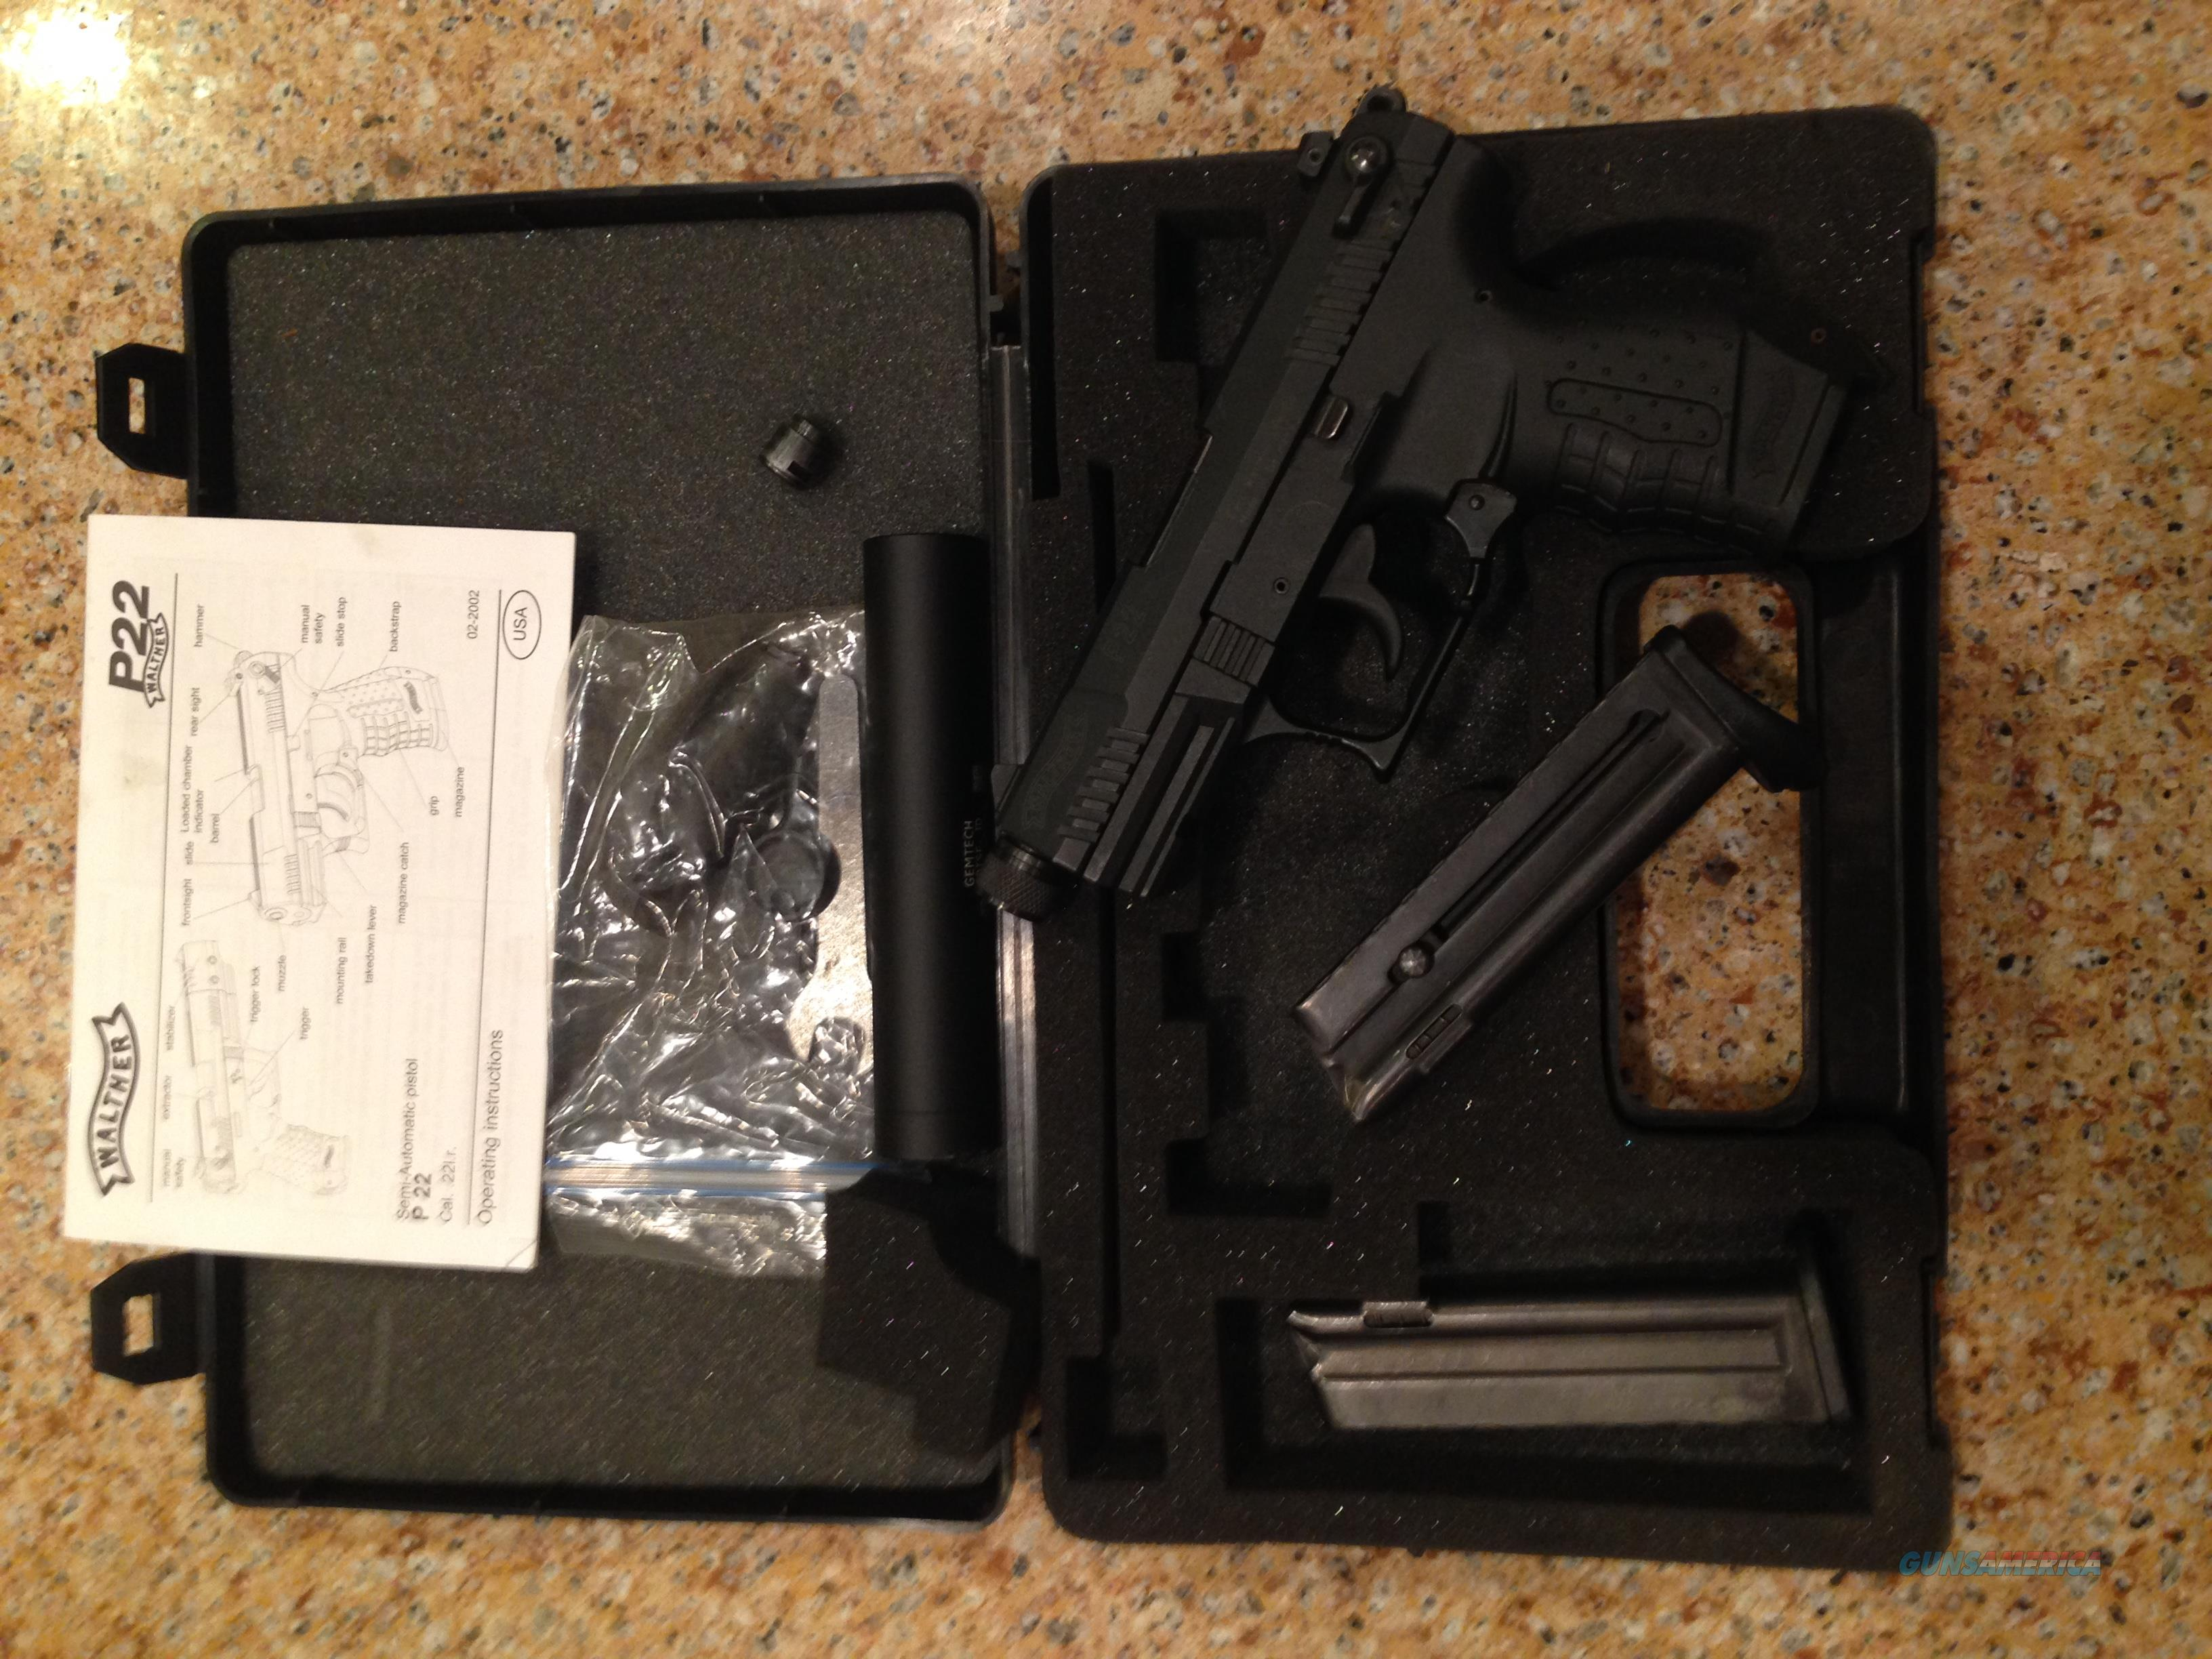 Flt Blk Wather P22  Guns > Pistols > Walther Pistols > Post WWII > P22